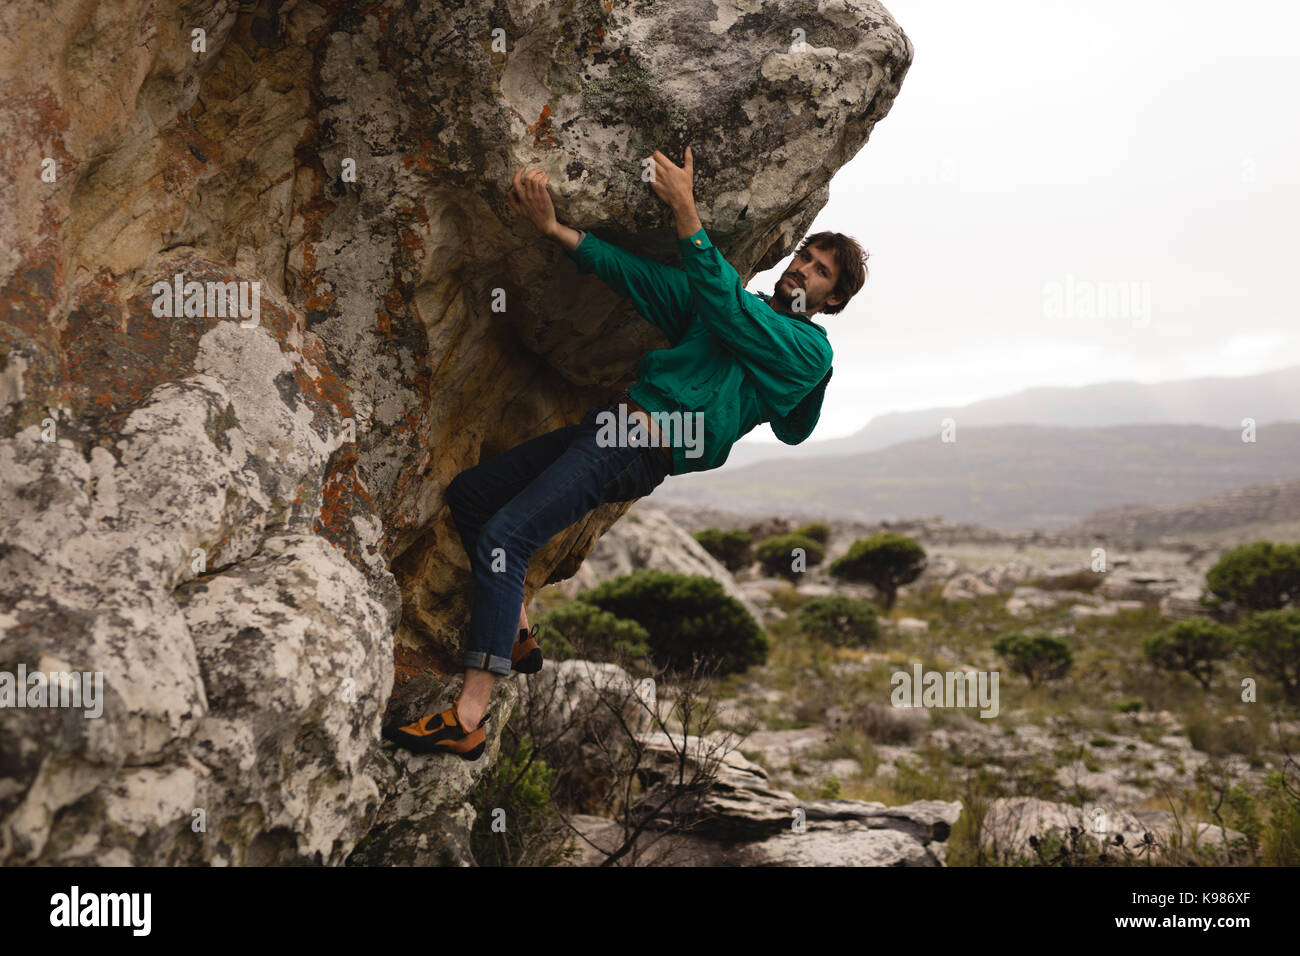 Man climbing mountain on a sunny day - Stock Image